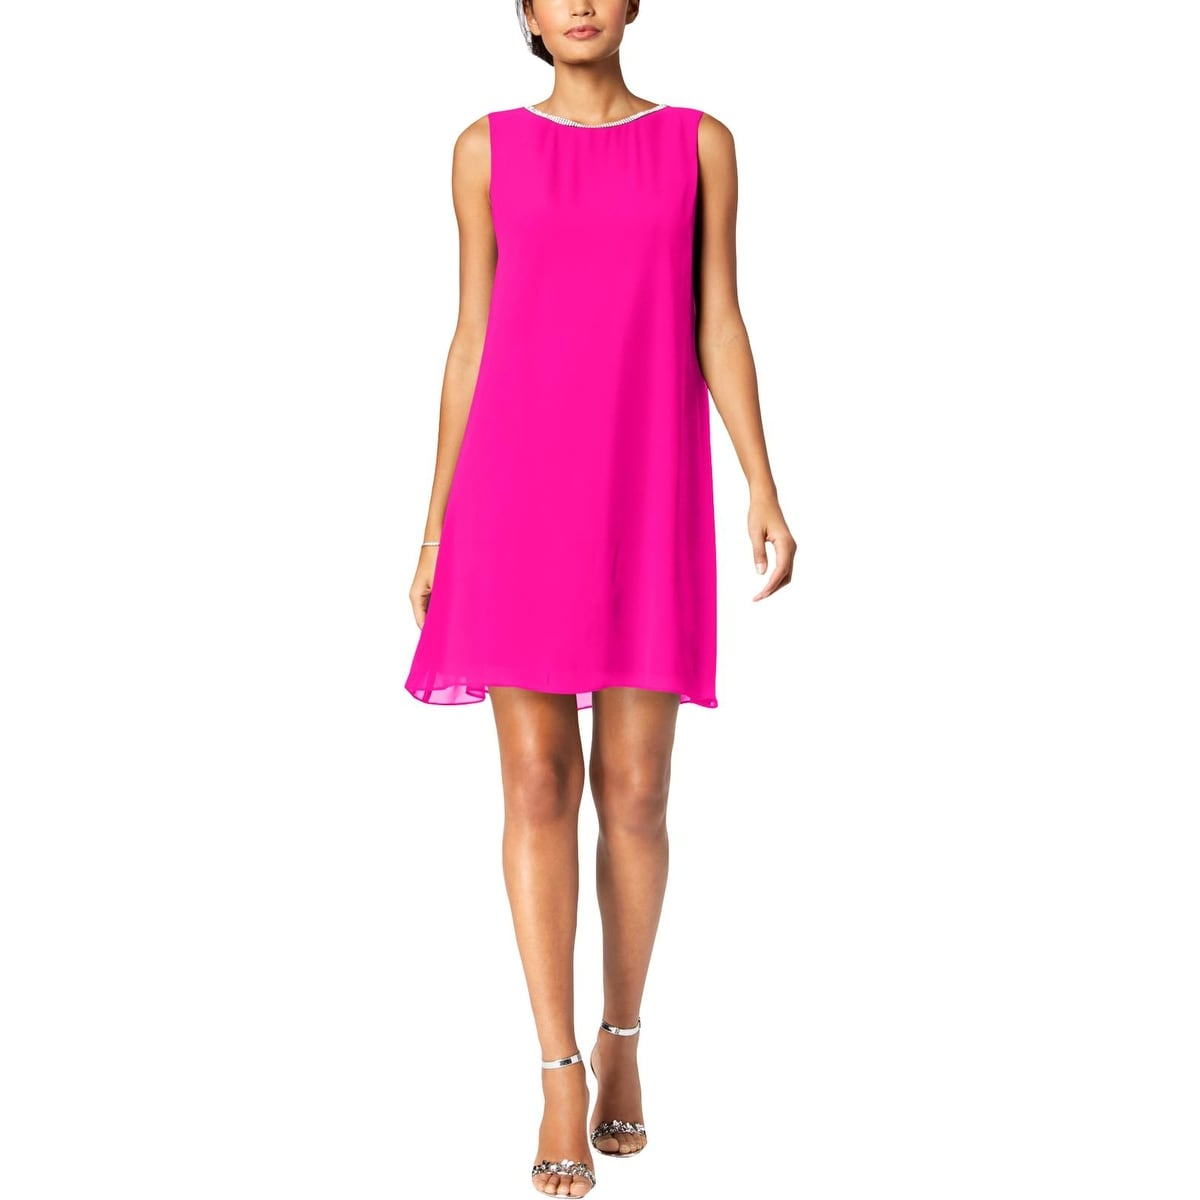 eee26ae95547 MSK Dresses | Find Great Women's Clothing Deals Shopping at Overstock